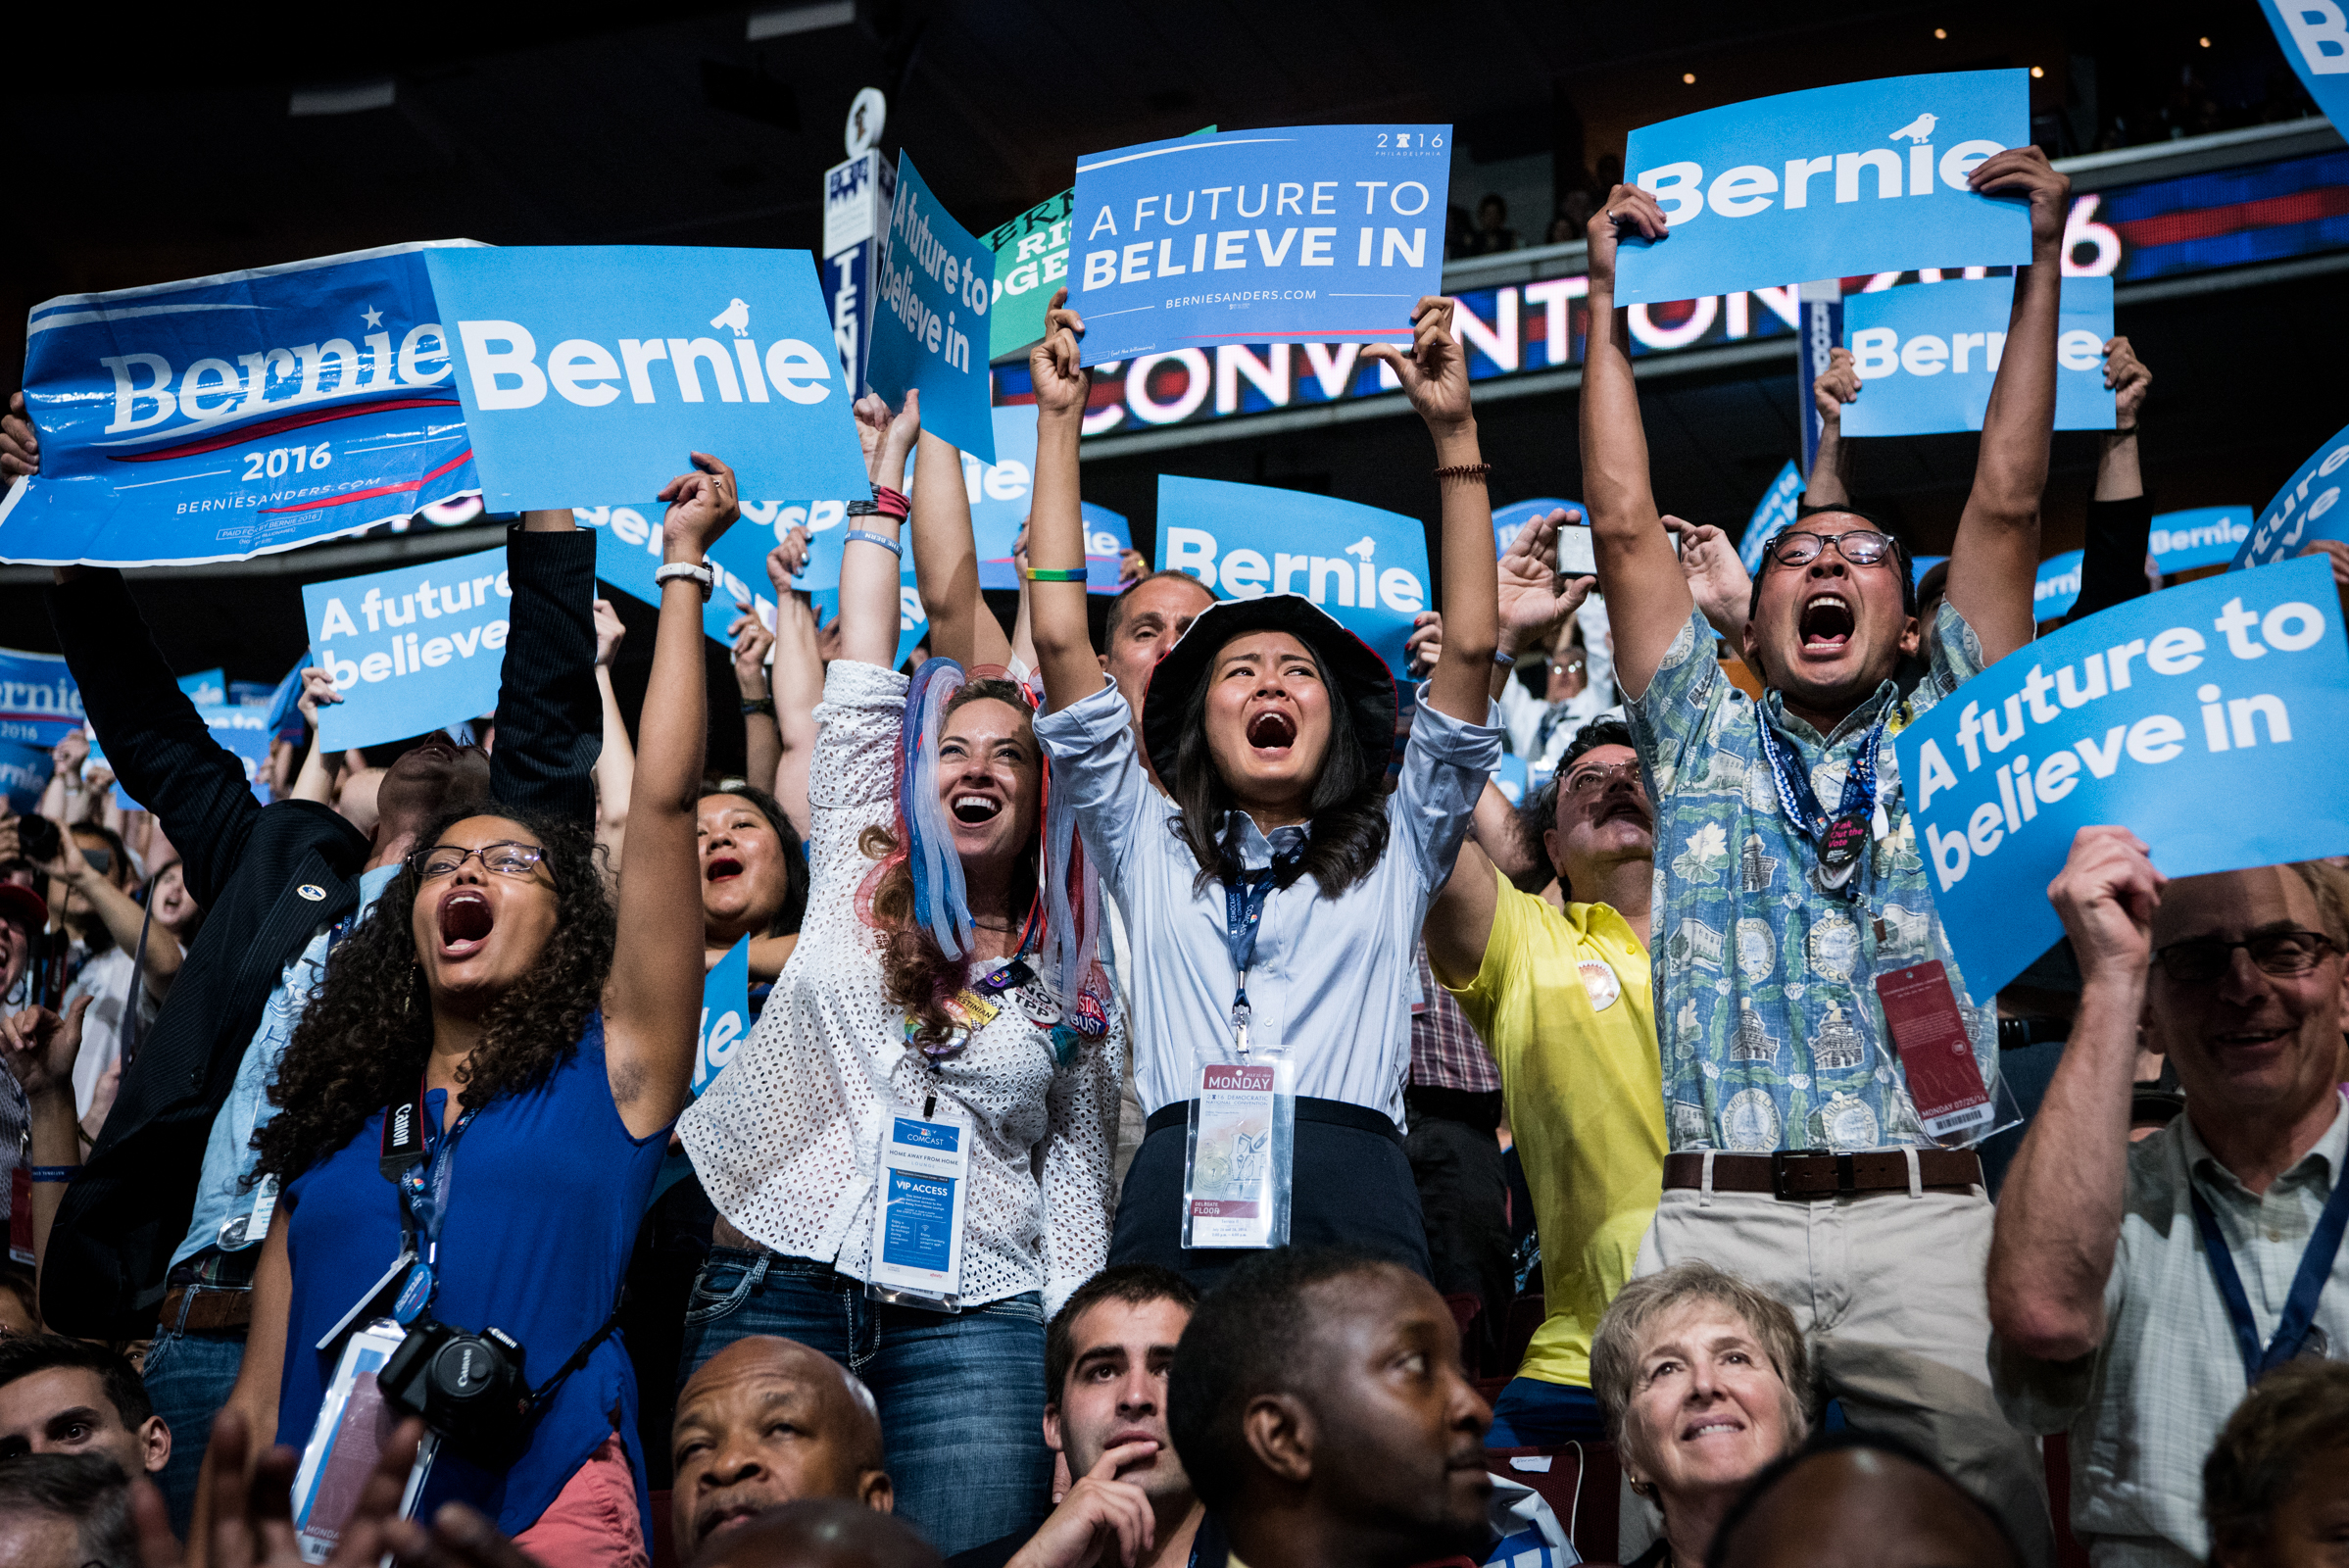 Delegates at the Democratic National Convention cheer for Senator Bernie Sanders, D-VT, as he approaches the stage at the Wells Fargo Center in Philadelphia on Monday, July 25, 2016. (Michael Ares / Philadelphia Inquirer)